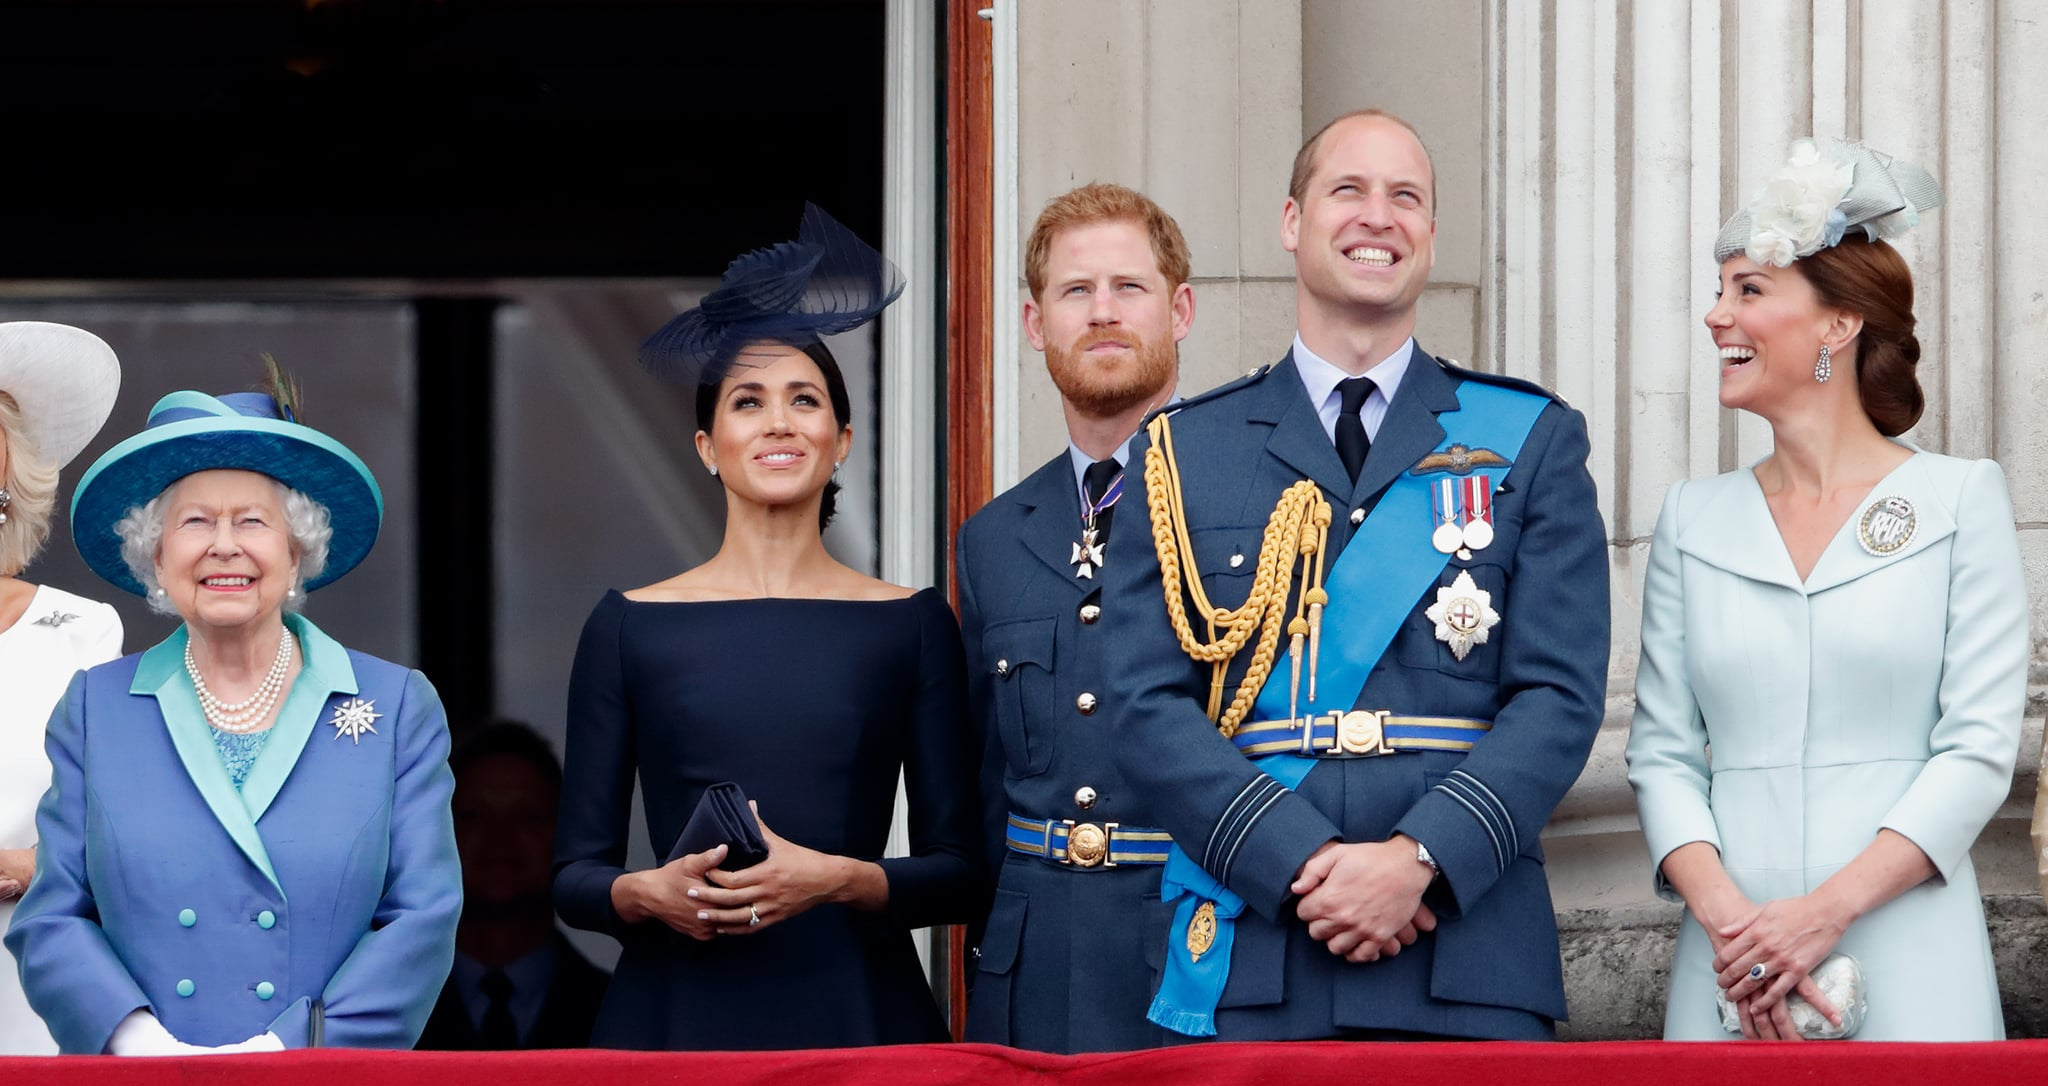 LONDON, UNITED KINGDOM - JULY 10: (EMBARGOED FOR PUBLICATION IN UK NEWSPAPERS UNTIL 24 HOURS AFTER CREATE DATE AND TIME) Queen Elizabeth II, Meghan, Duchess of Sussex, Prince Harry, Duke of Sussex, Prince William, Duke of Cambridge and Catherine, Duchess of Cambridge watch a flypast to mark the centenary of the Royal Air Force from the balcony of Buckingham Palace on July 10, 2018 in London, England. The 100th birthday of the RAF, which was founded on on 1 April 1918, was marked with a centenary parade with the presentation of a new Queen's Colour and flypast of 100 aircraft over Buckingham Palace. (Photo by Max Mumby/Indigo/Getty Images)